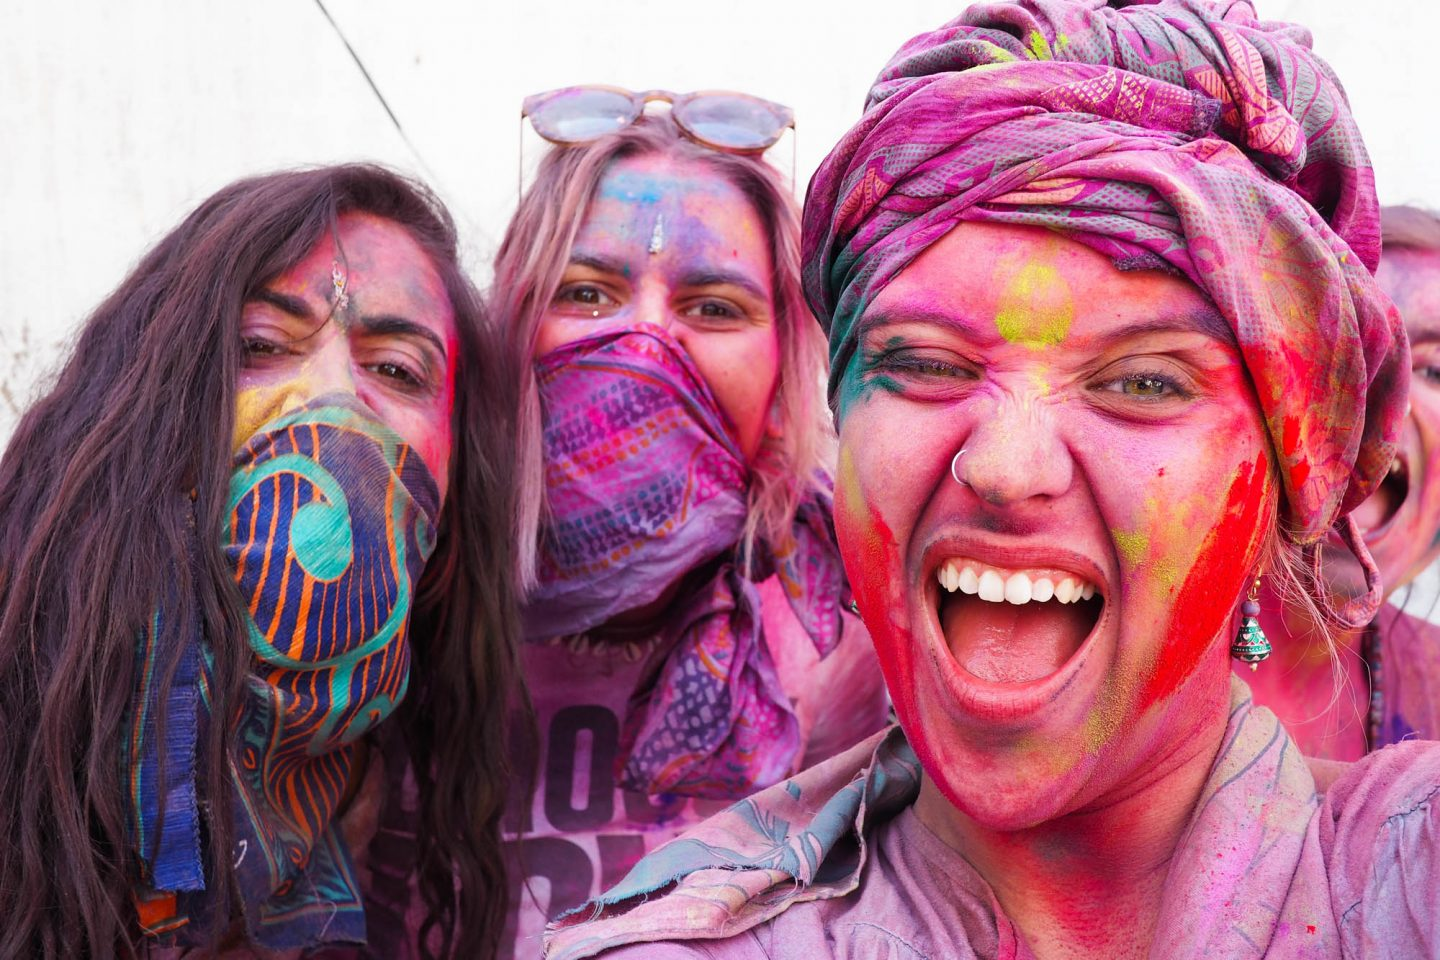 Painted faces portraits at Holi in Pushkar Rajasthan